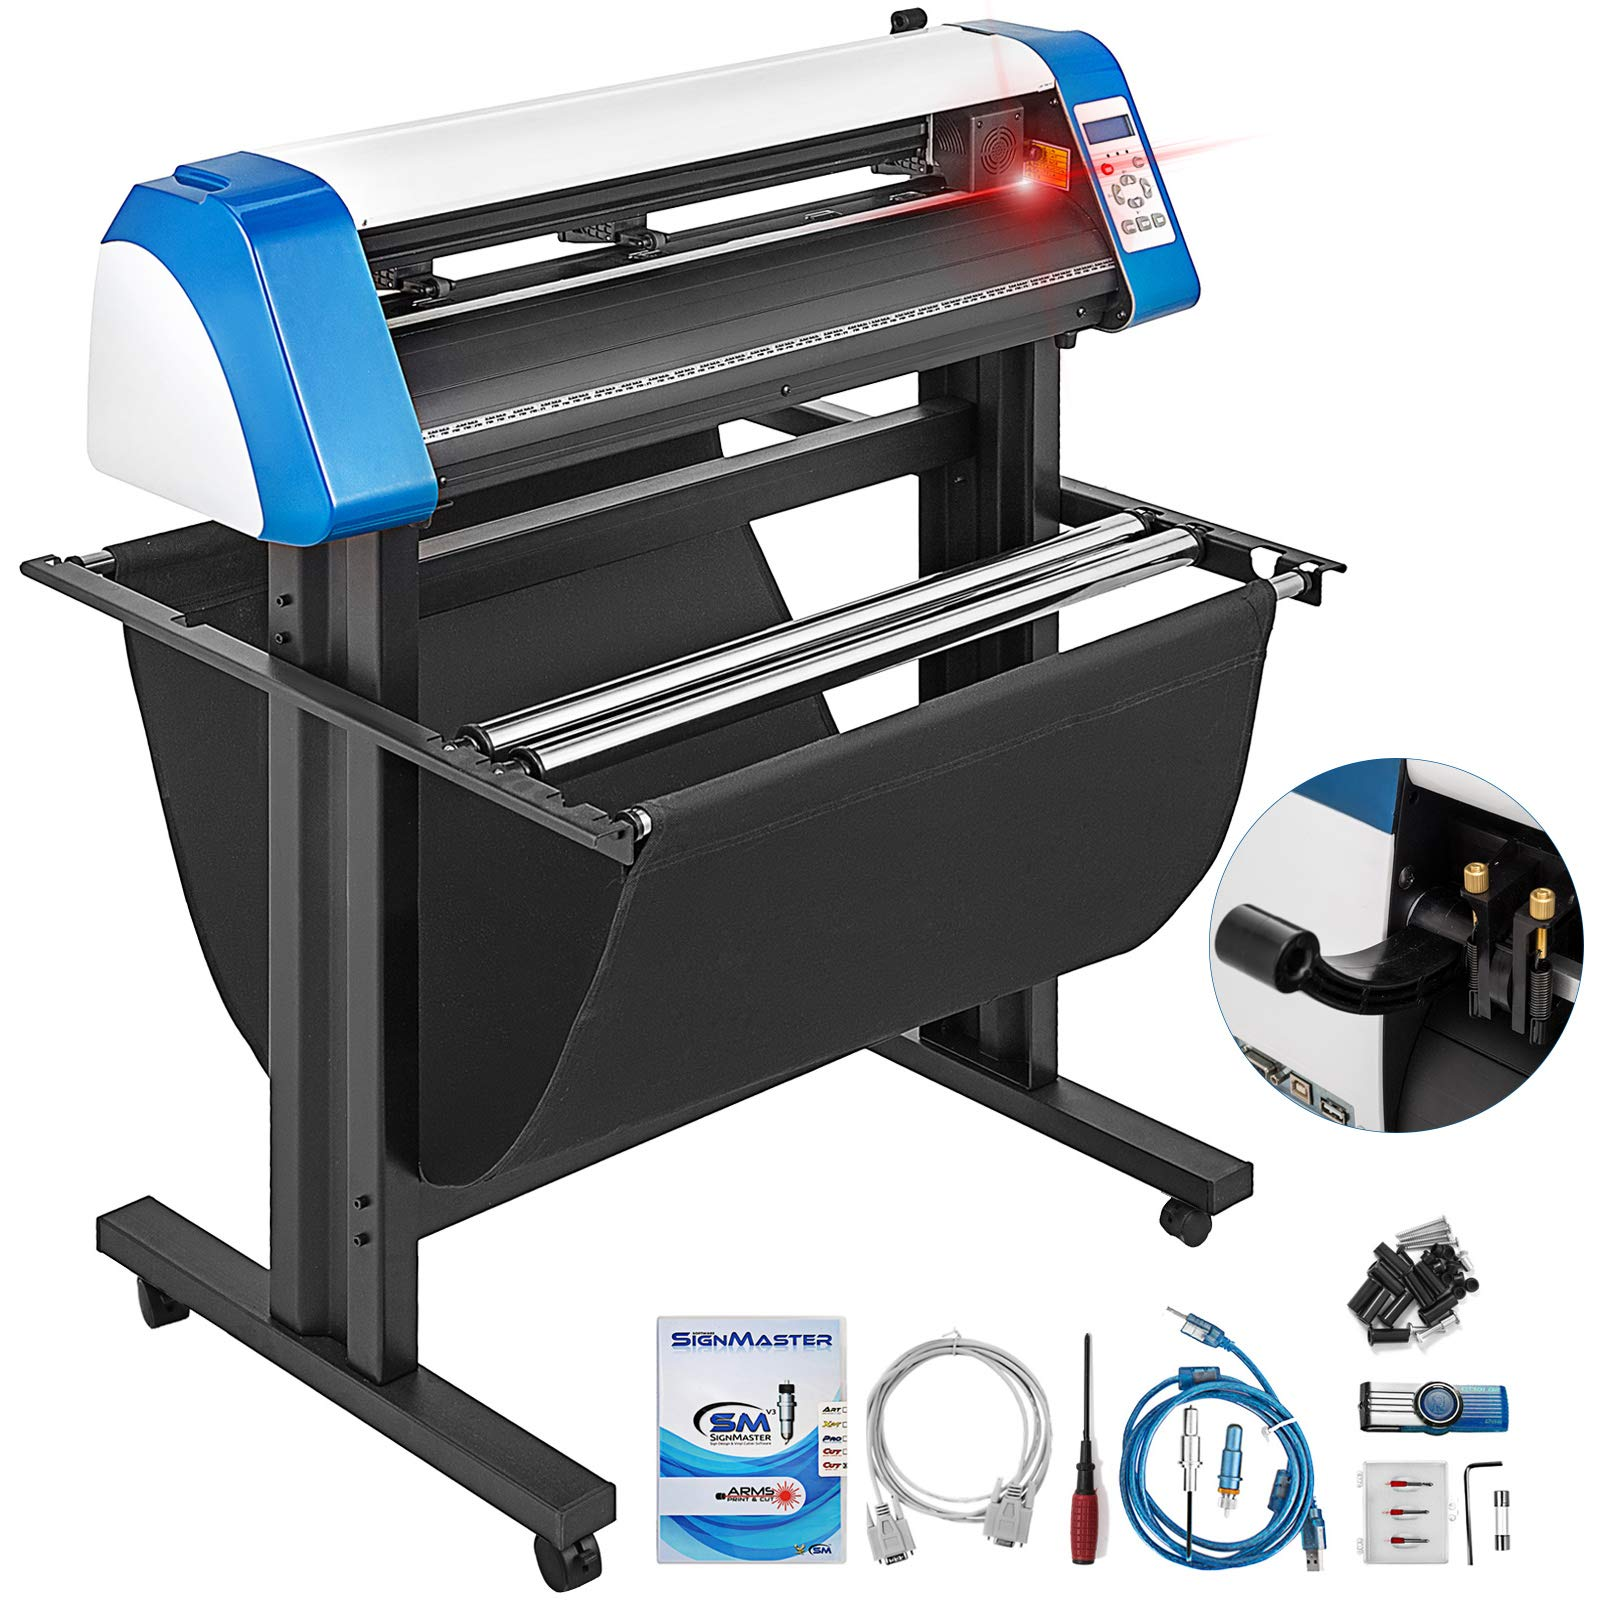 VEVOR Vinyl Cutter 28 inch Vinyl Cutter Machine Semi-Automatic DIY Vinyl Printer Cutter Machine Manual Positioning Sign Cutting with Floor Stand Signmaster Software by VEVOR (Image #1)